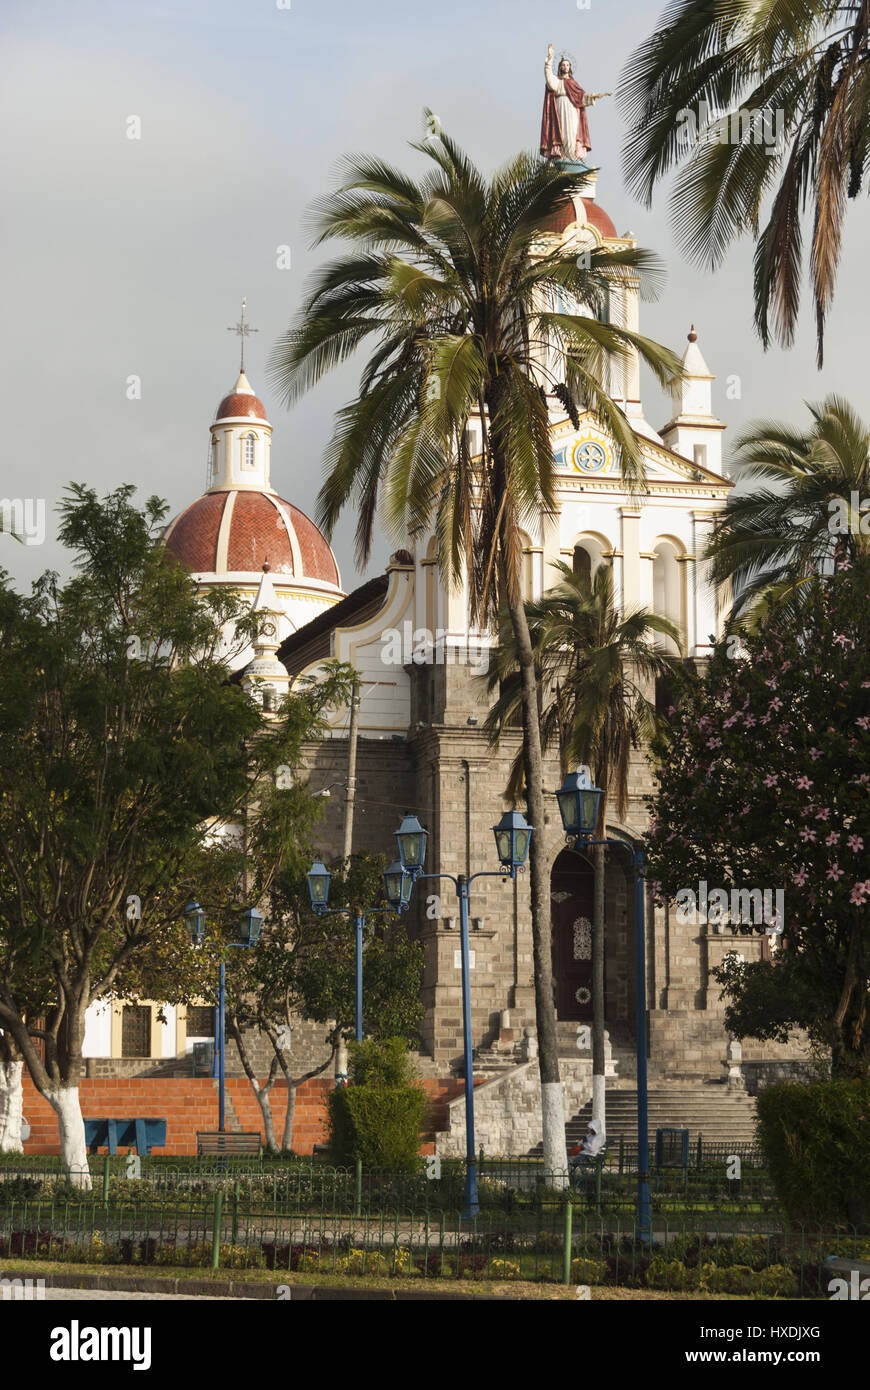 Ecuador, Cotacachi, Cotacachi Plaza, church - Stock Image